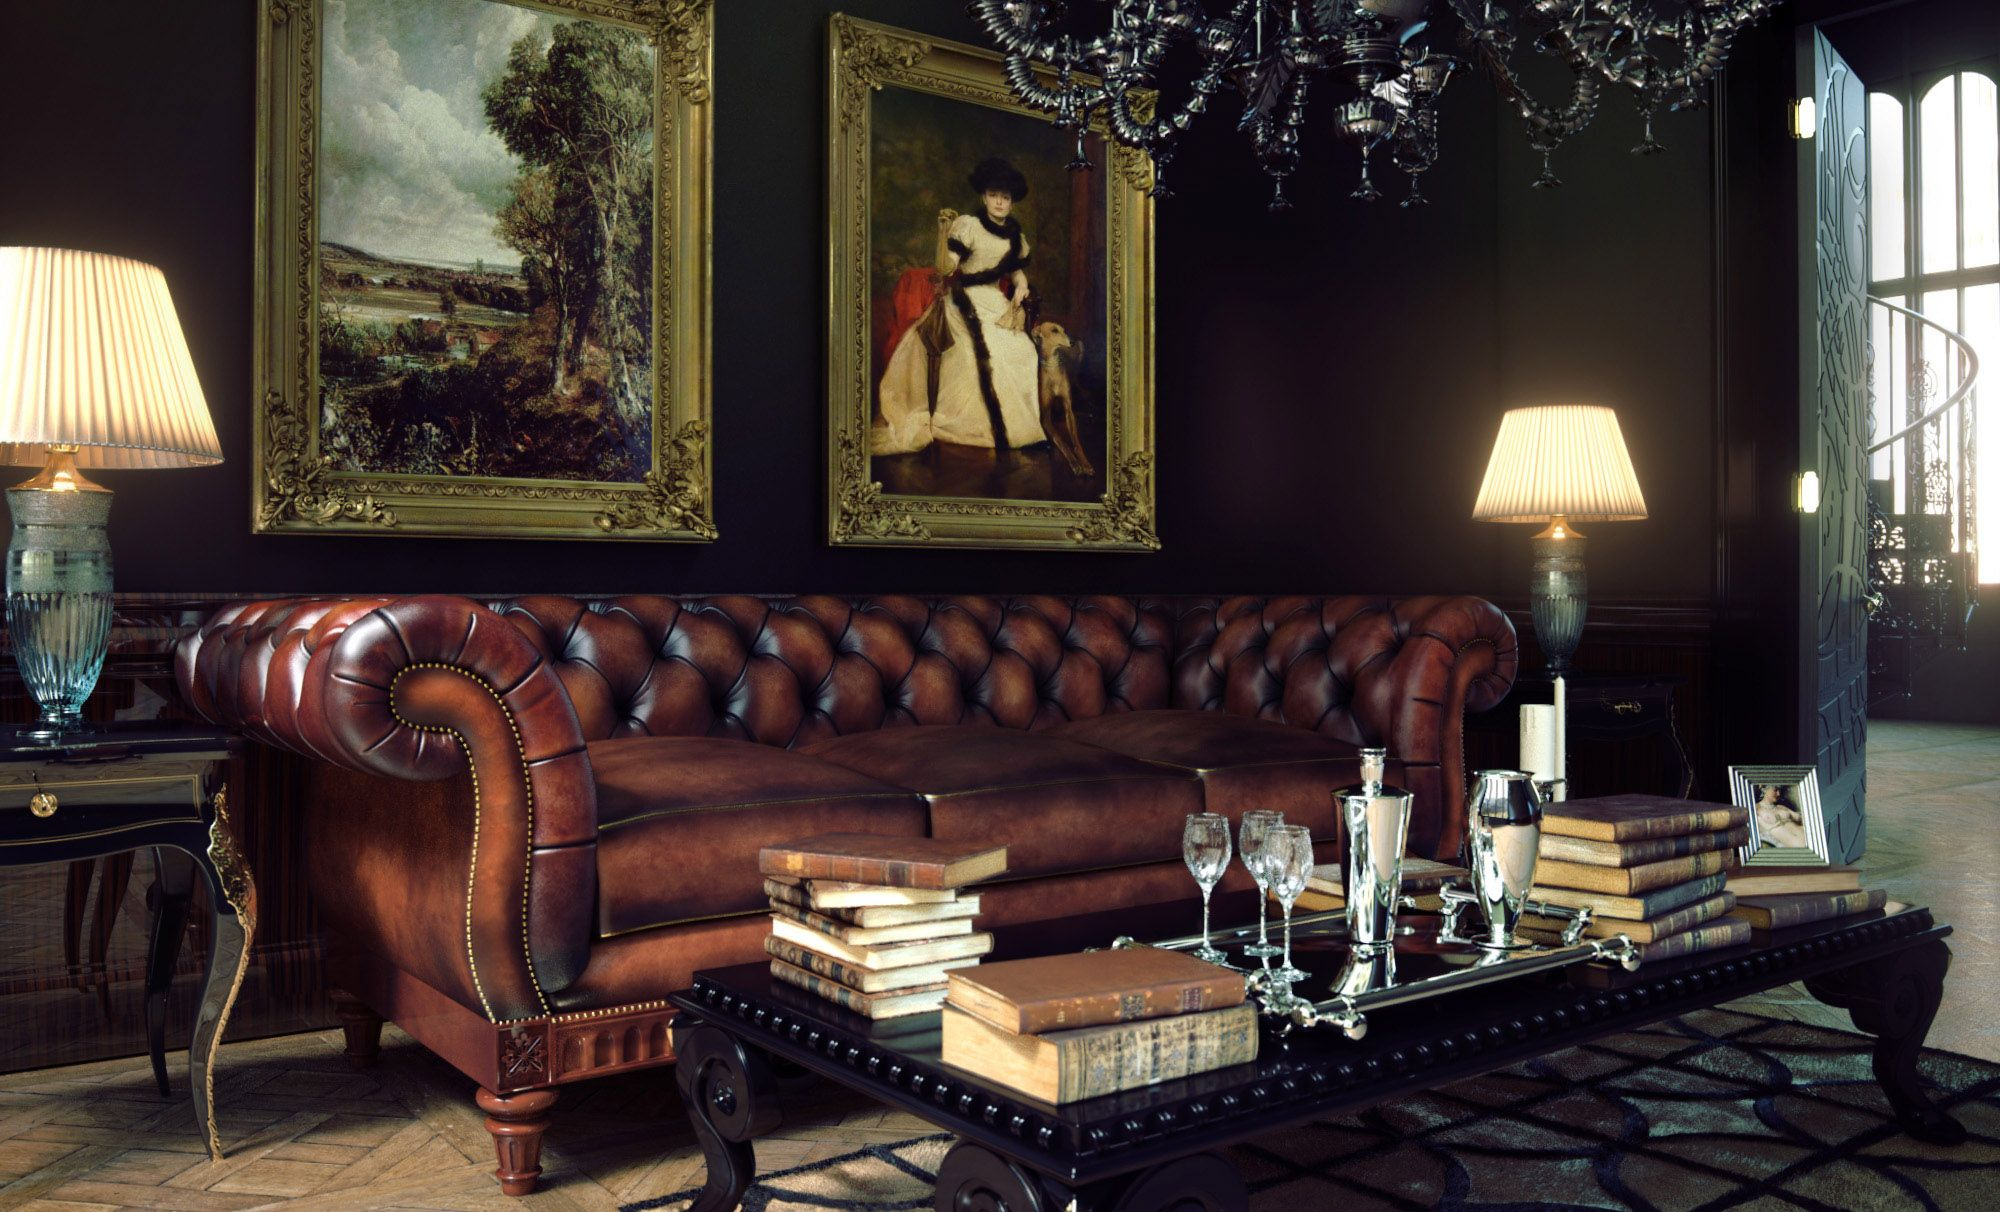 Furniture Brown Leather Chesterfield Couch With Chandelier And Table Lamp For Living Room Decoration Ideas Brown Living Room Decor Furniture Lamps Living Room